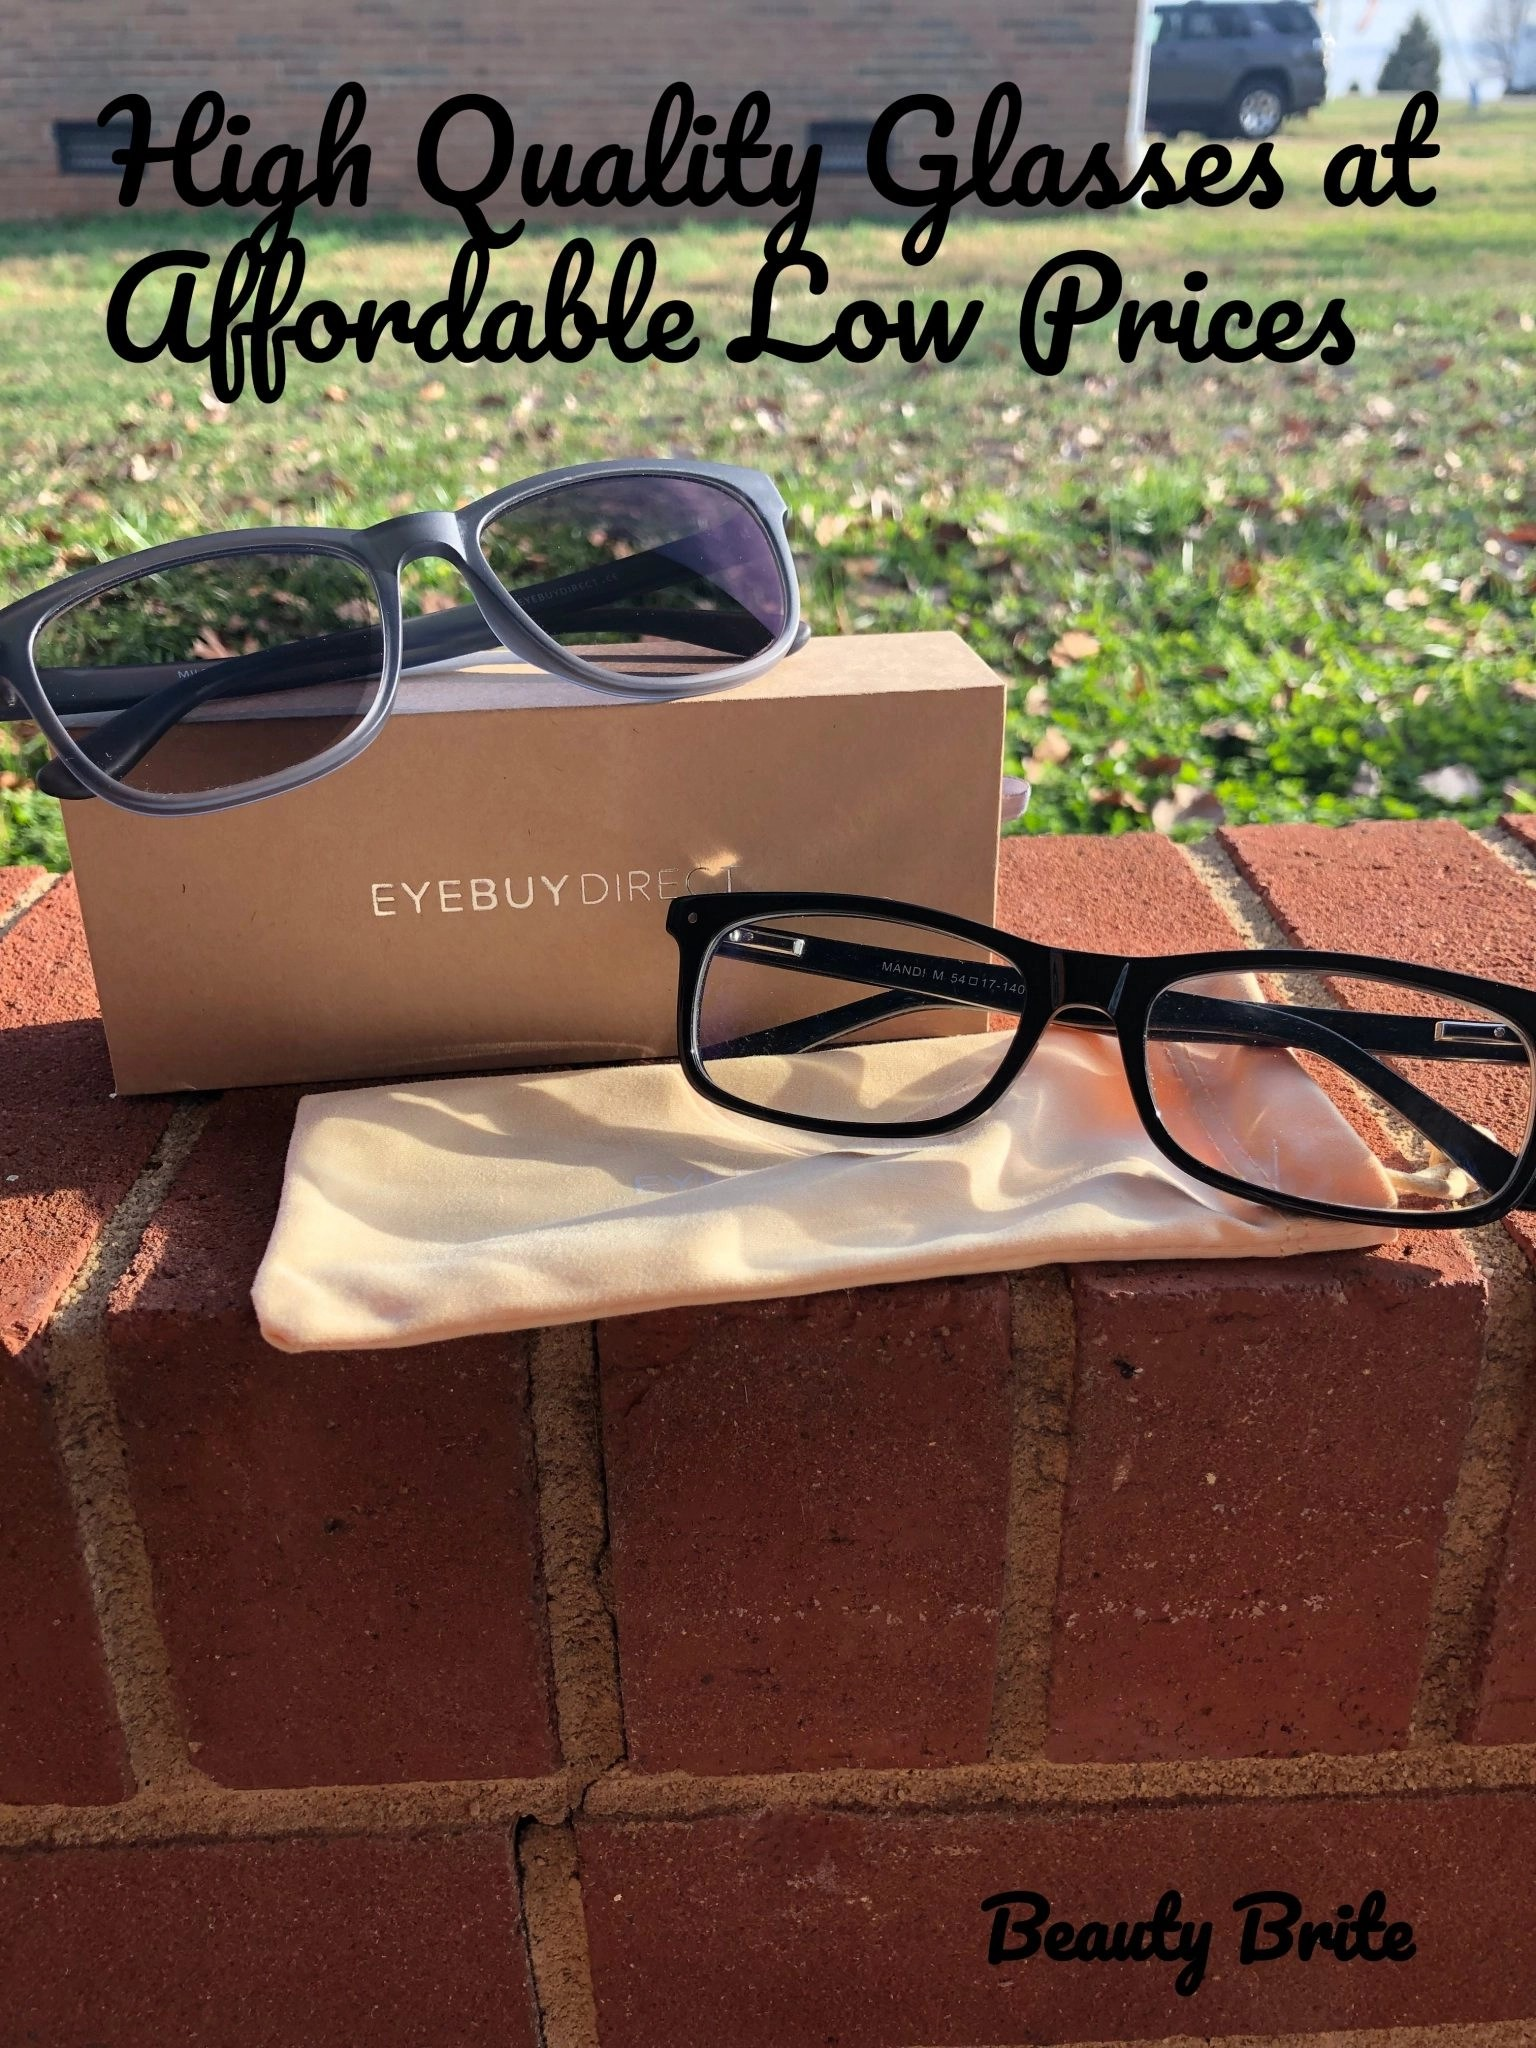 79636d8d55 High Quality Glasses with Affordable Low Prices